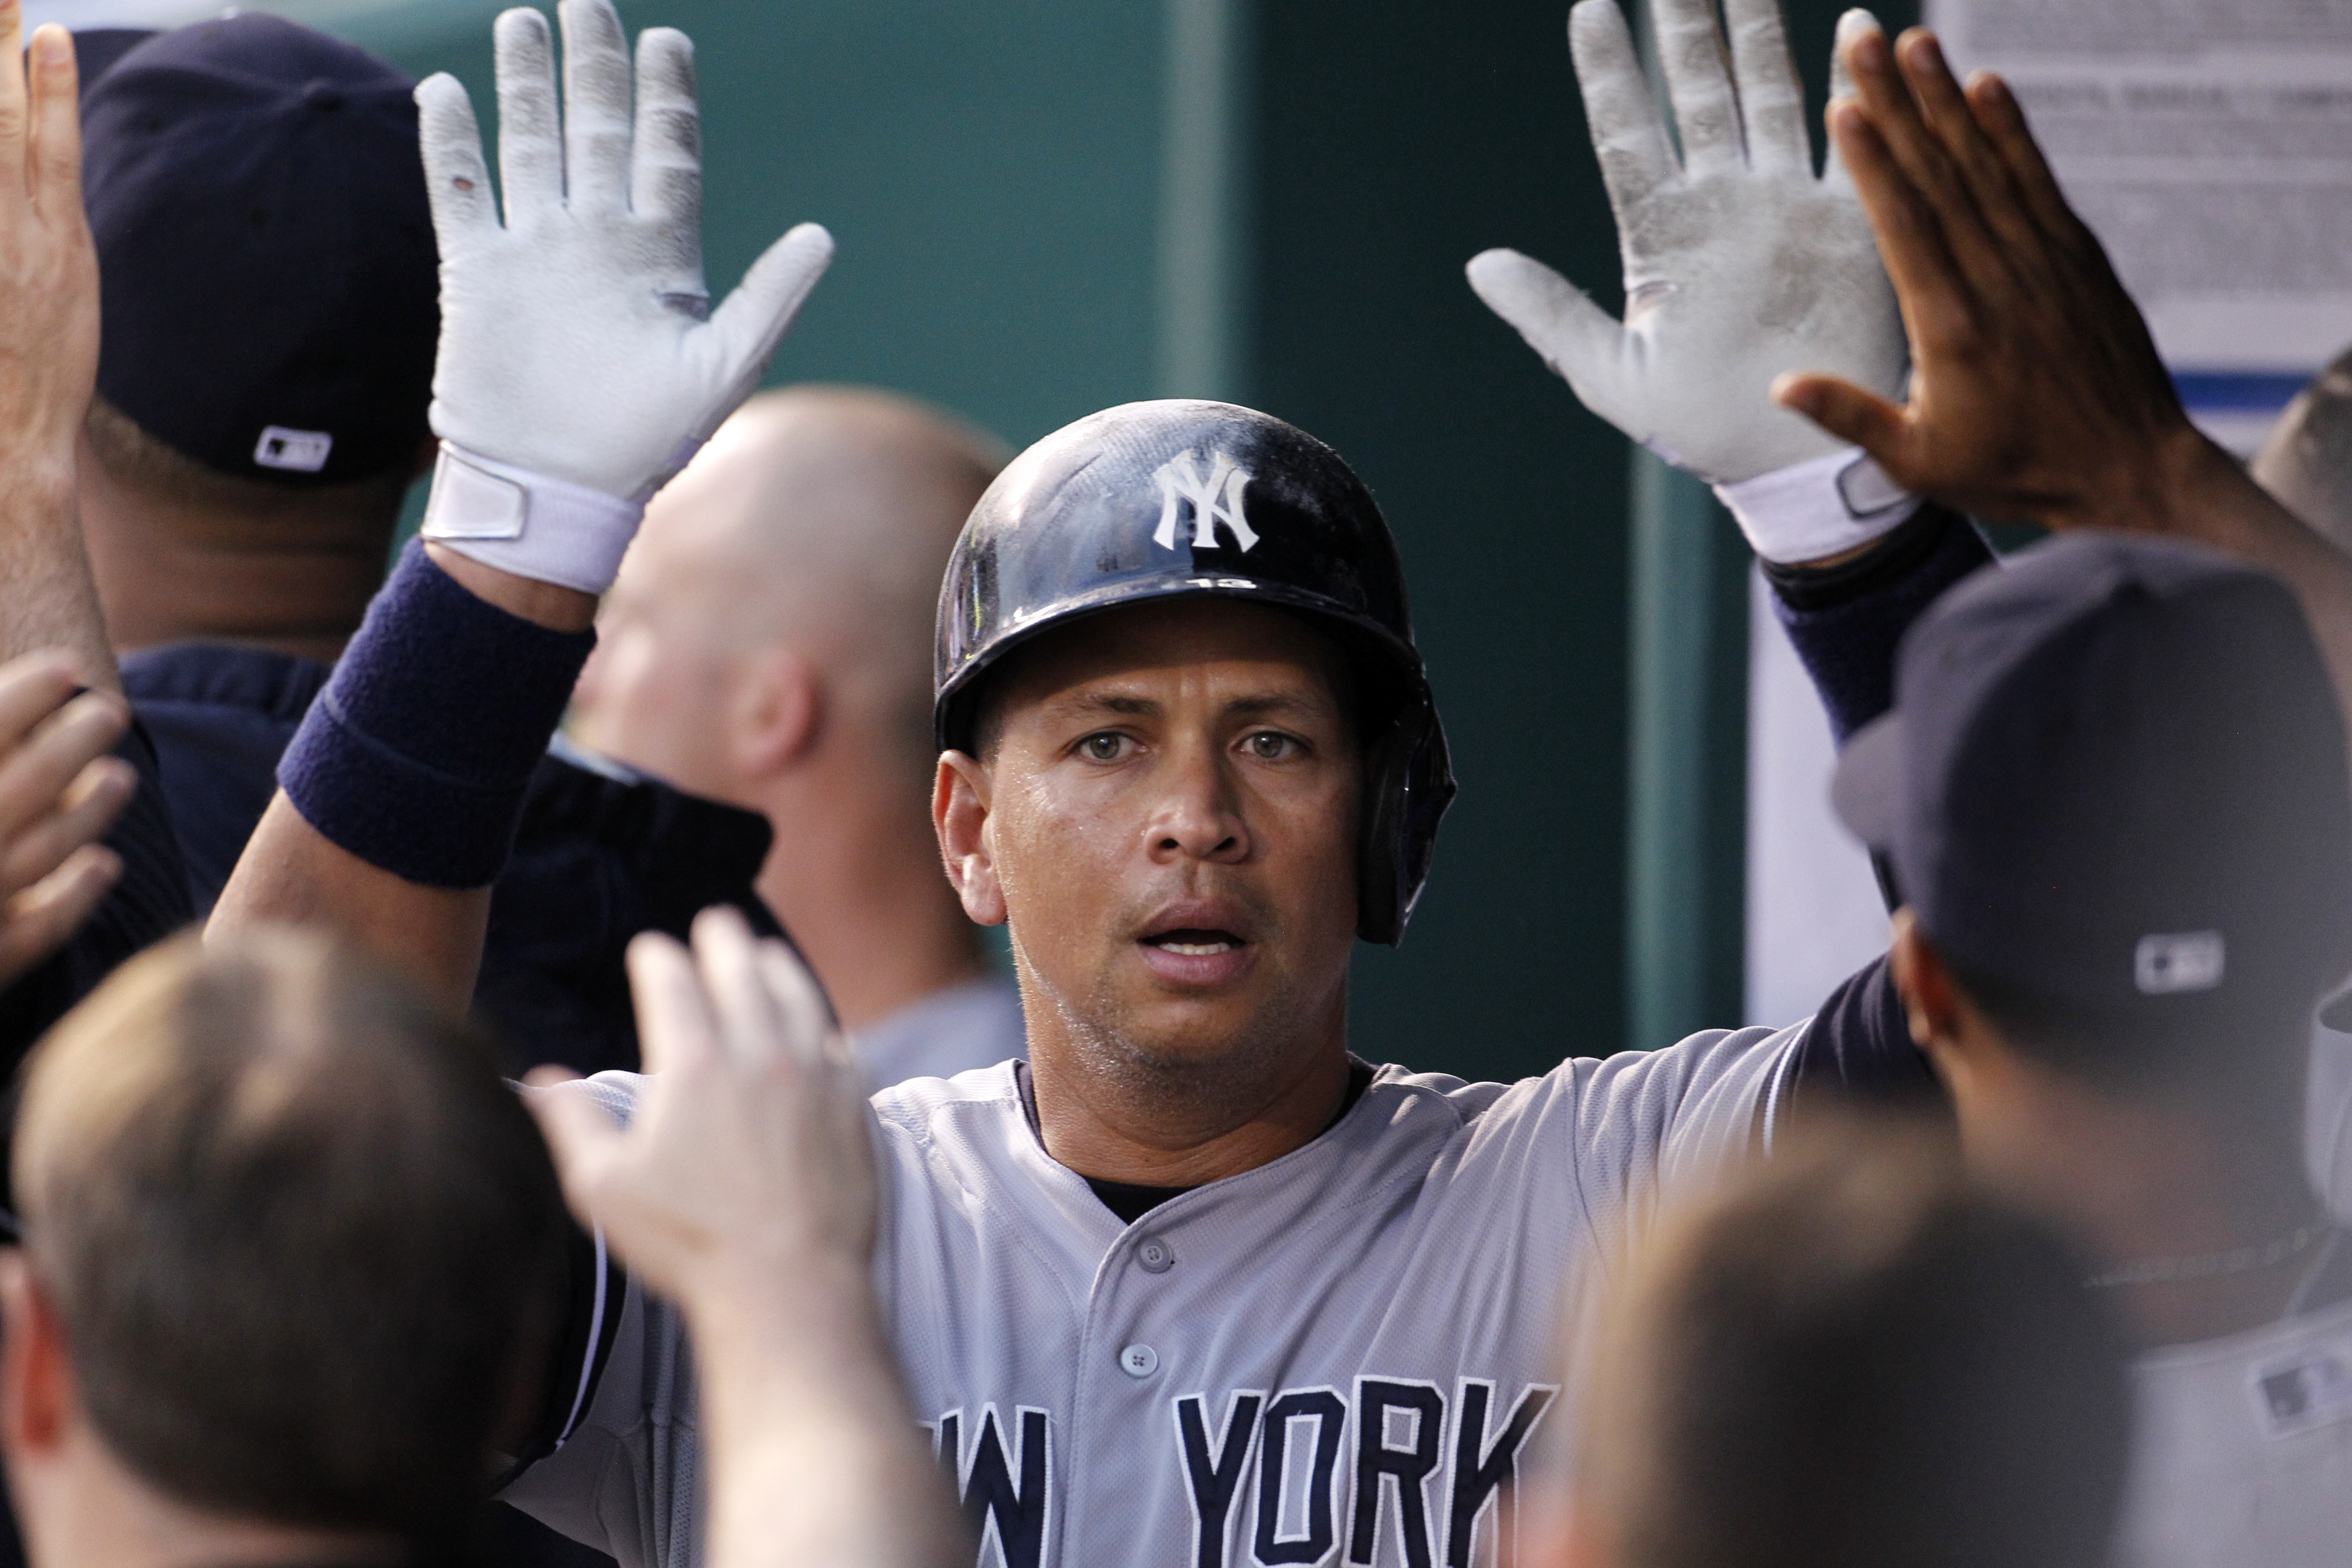 New York Yankees' Alex Rodriguez is congratulated in the dugout after scoring from third base in the fourth inning of a baseball game against the Kansas City Royals at Kauffman Stadium in Kansas City, Mo., Friday, May 15, 2015. Rodriguez scored on a sacri